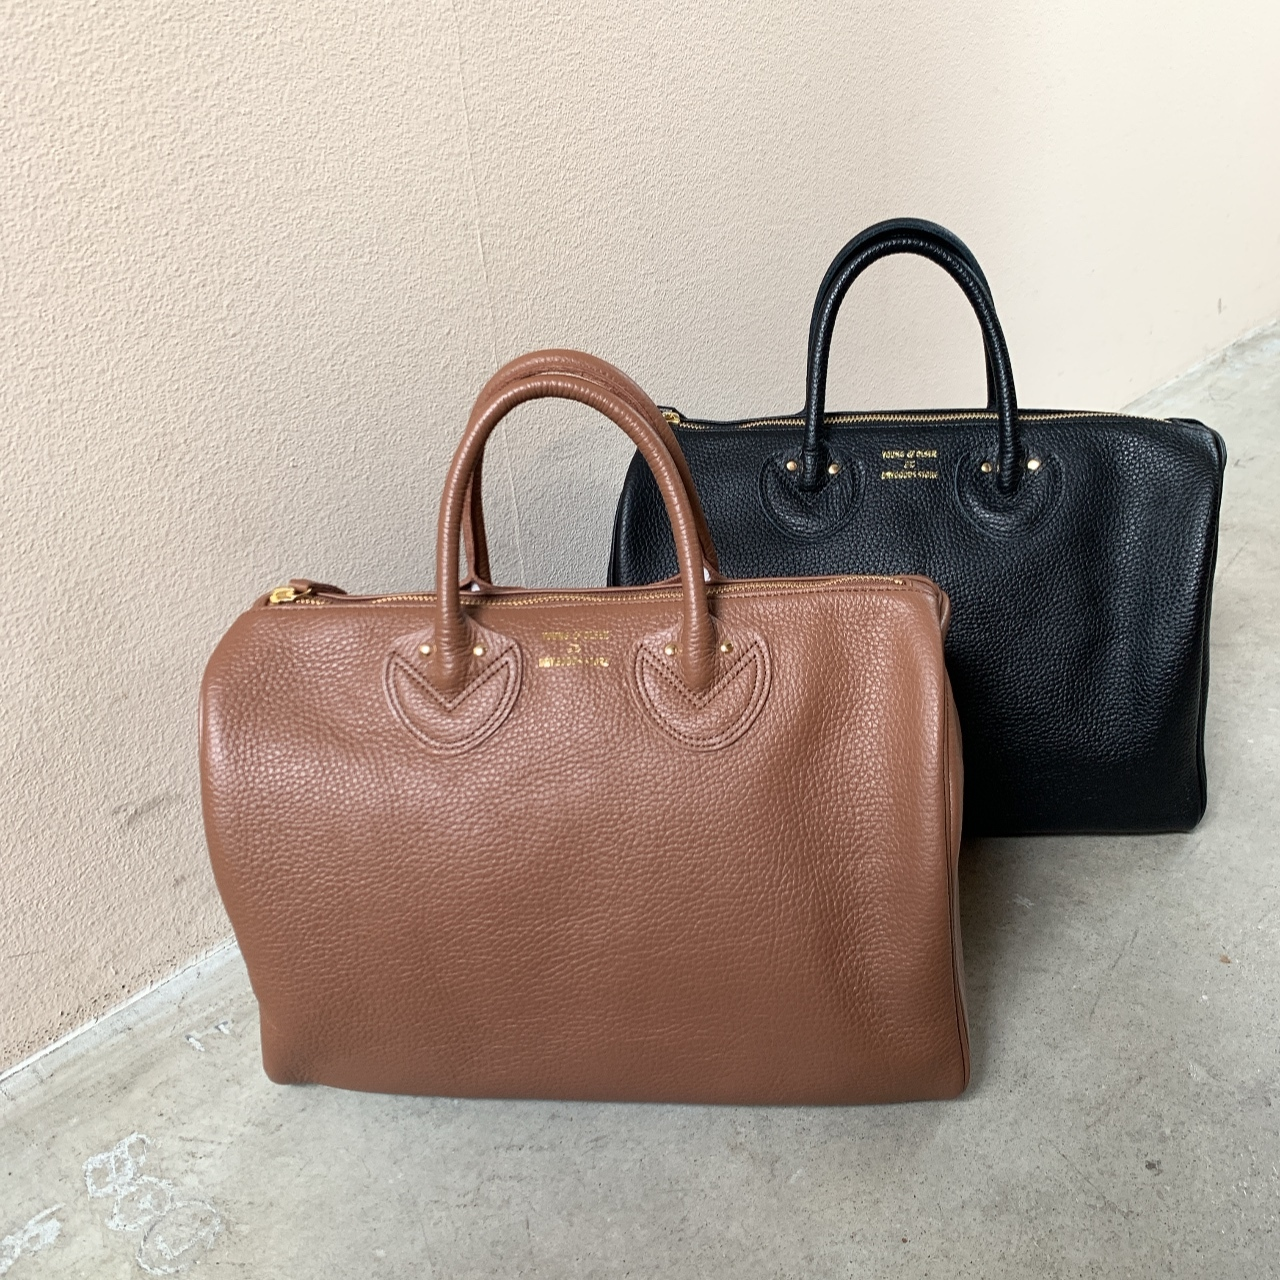 YOUNG&OLSEN - EMBOSSED LEATHER BOSTON S